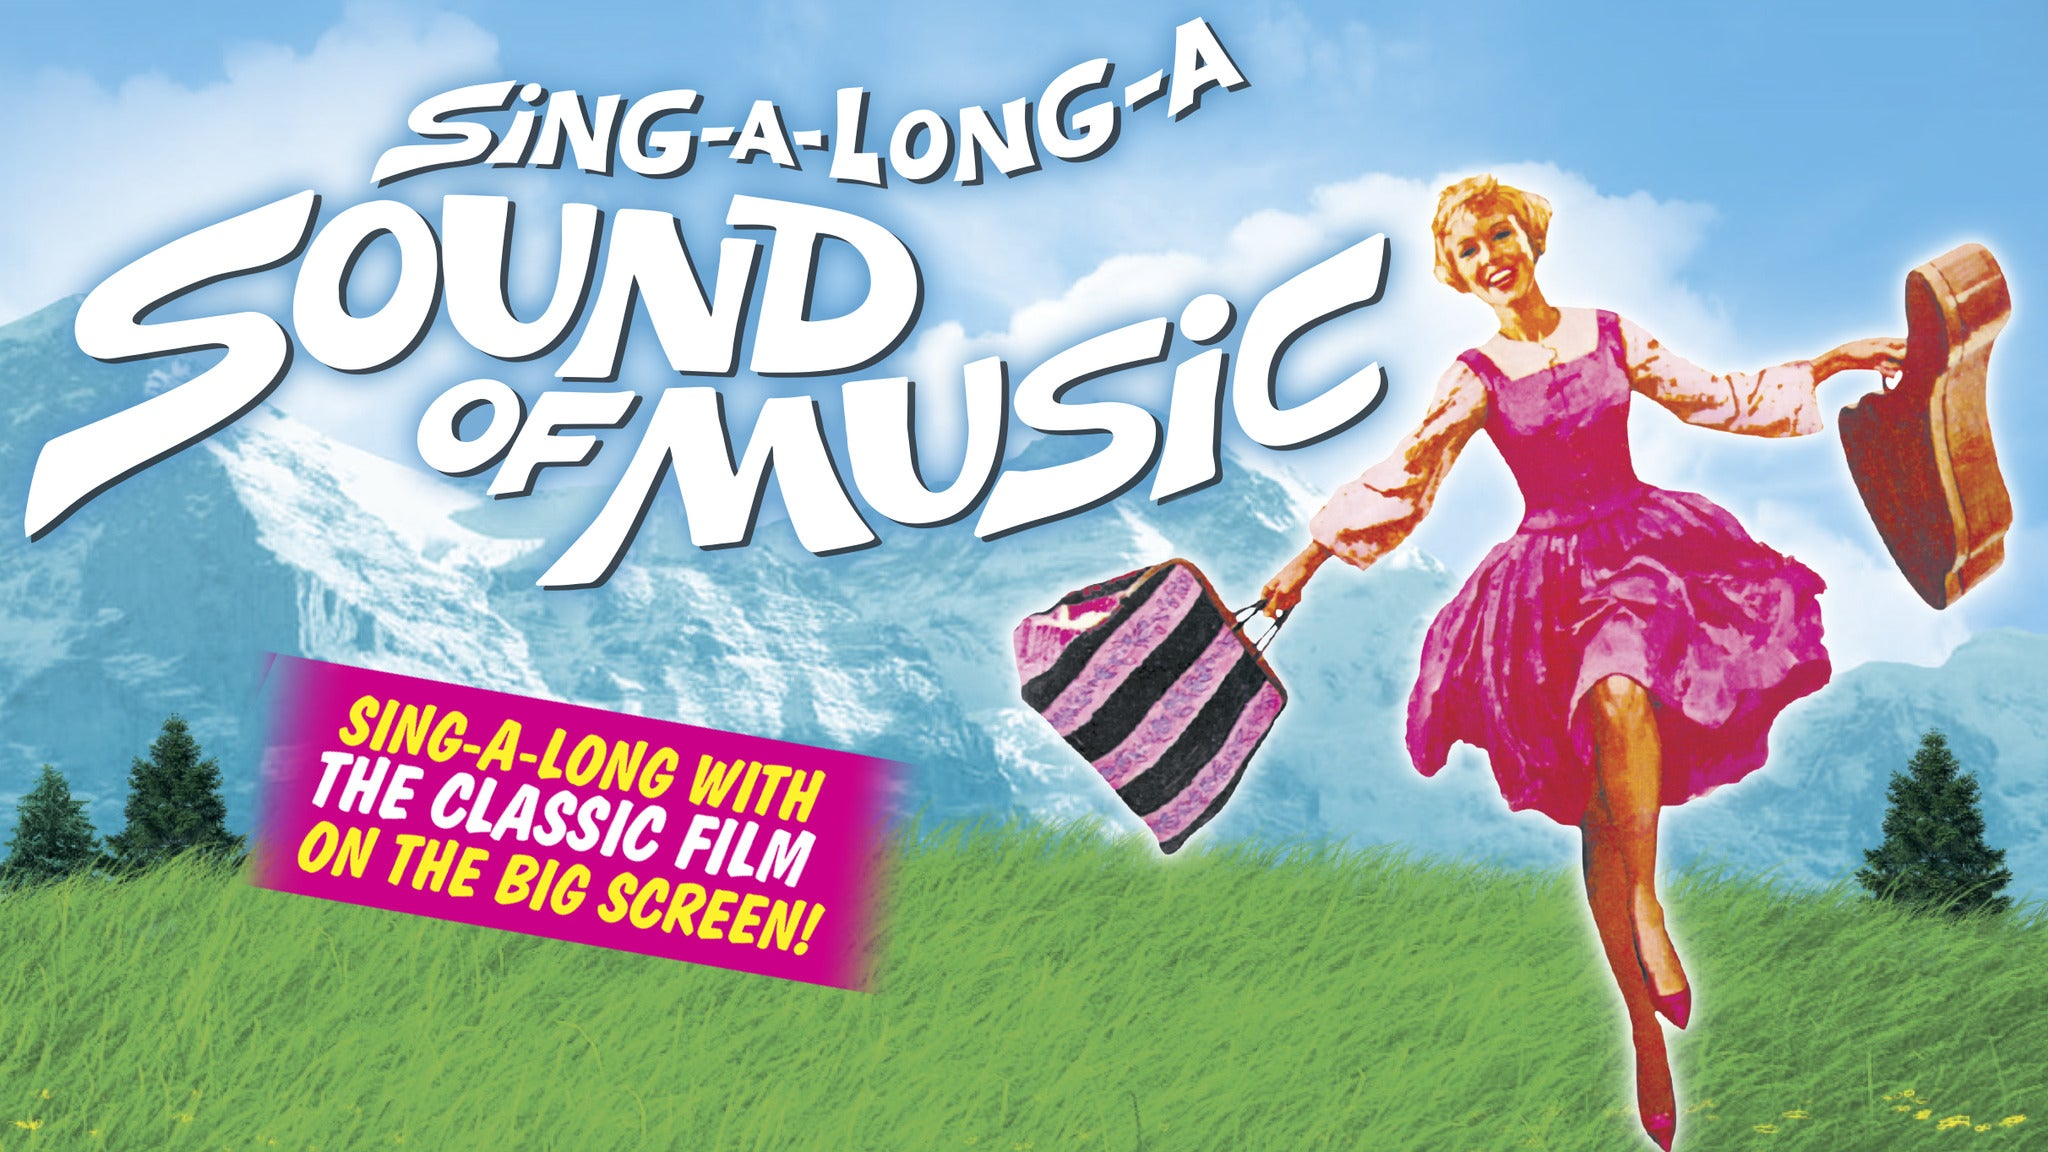 Sing-A-Long-A Sound of Music at 5th Avenue Theatre